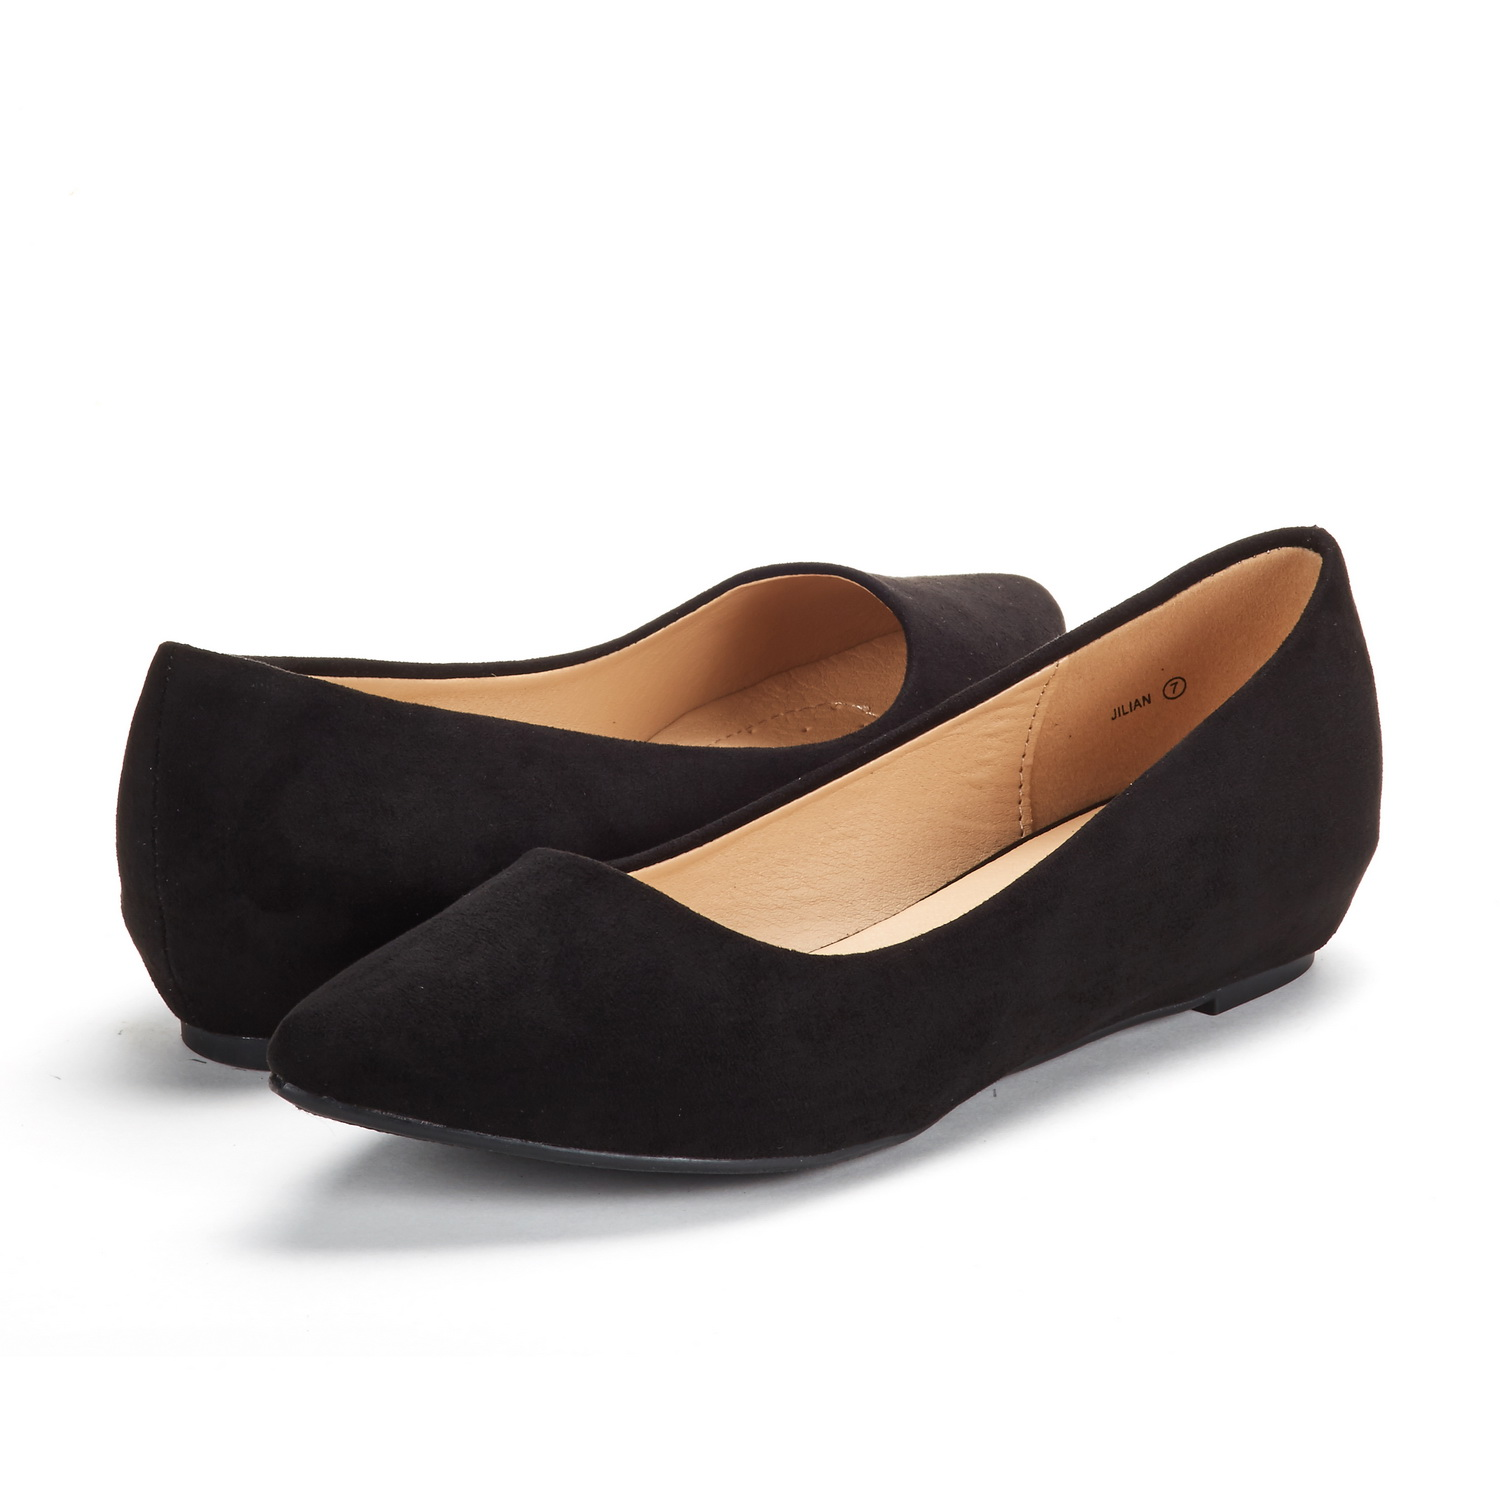 DREAM-PAIRS-Women-Low-Wedge-Flats-Ladies-Pointed-Toe-Slip-On-Comfort-Flat-Shoes thumbnail 63